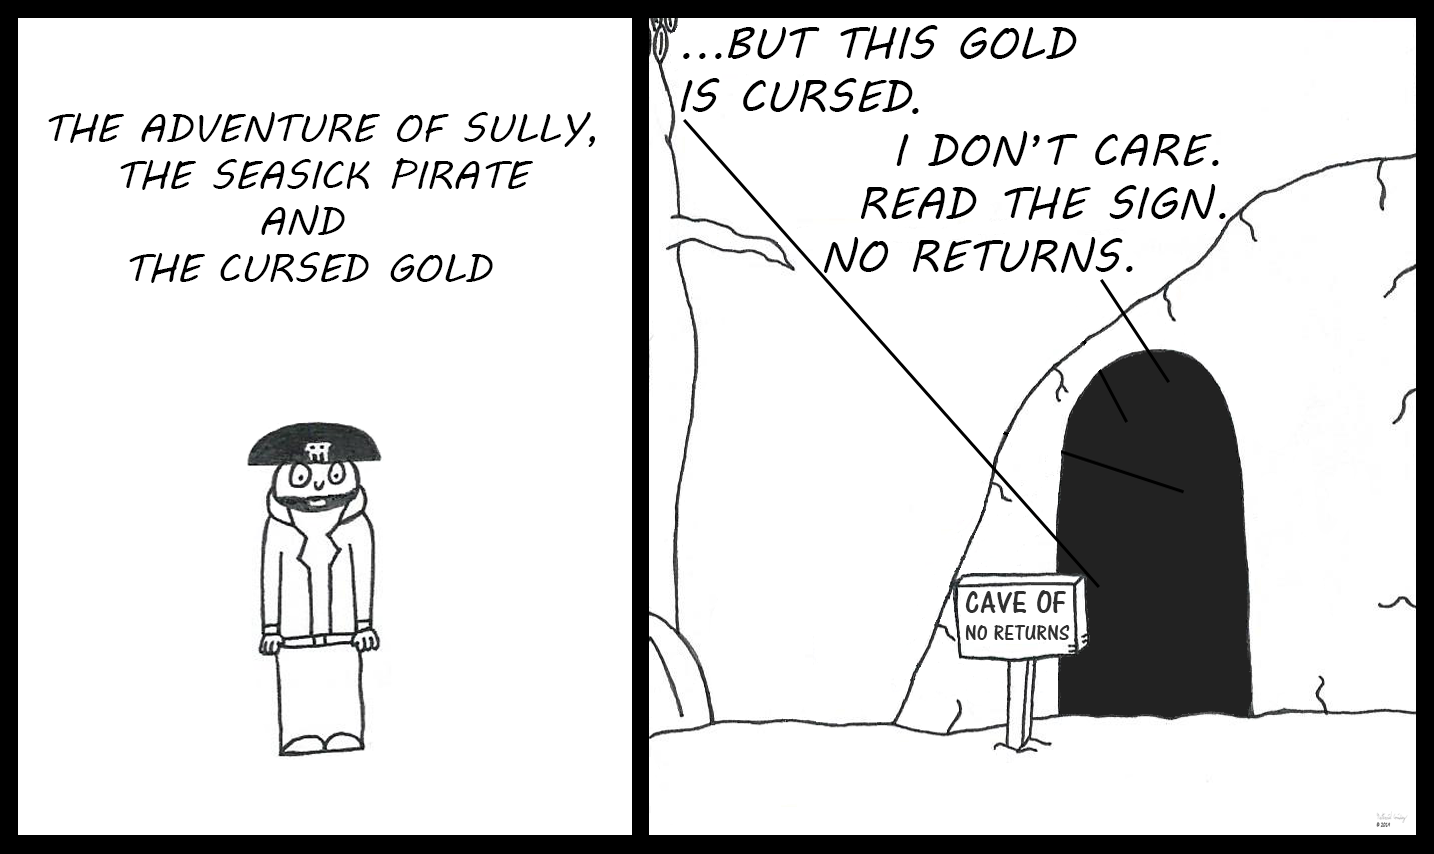 Sully, the Seasick Pirate - The Cursed Gold